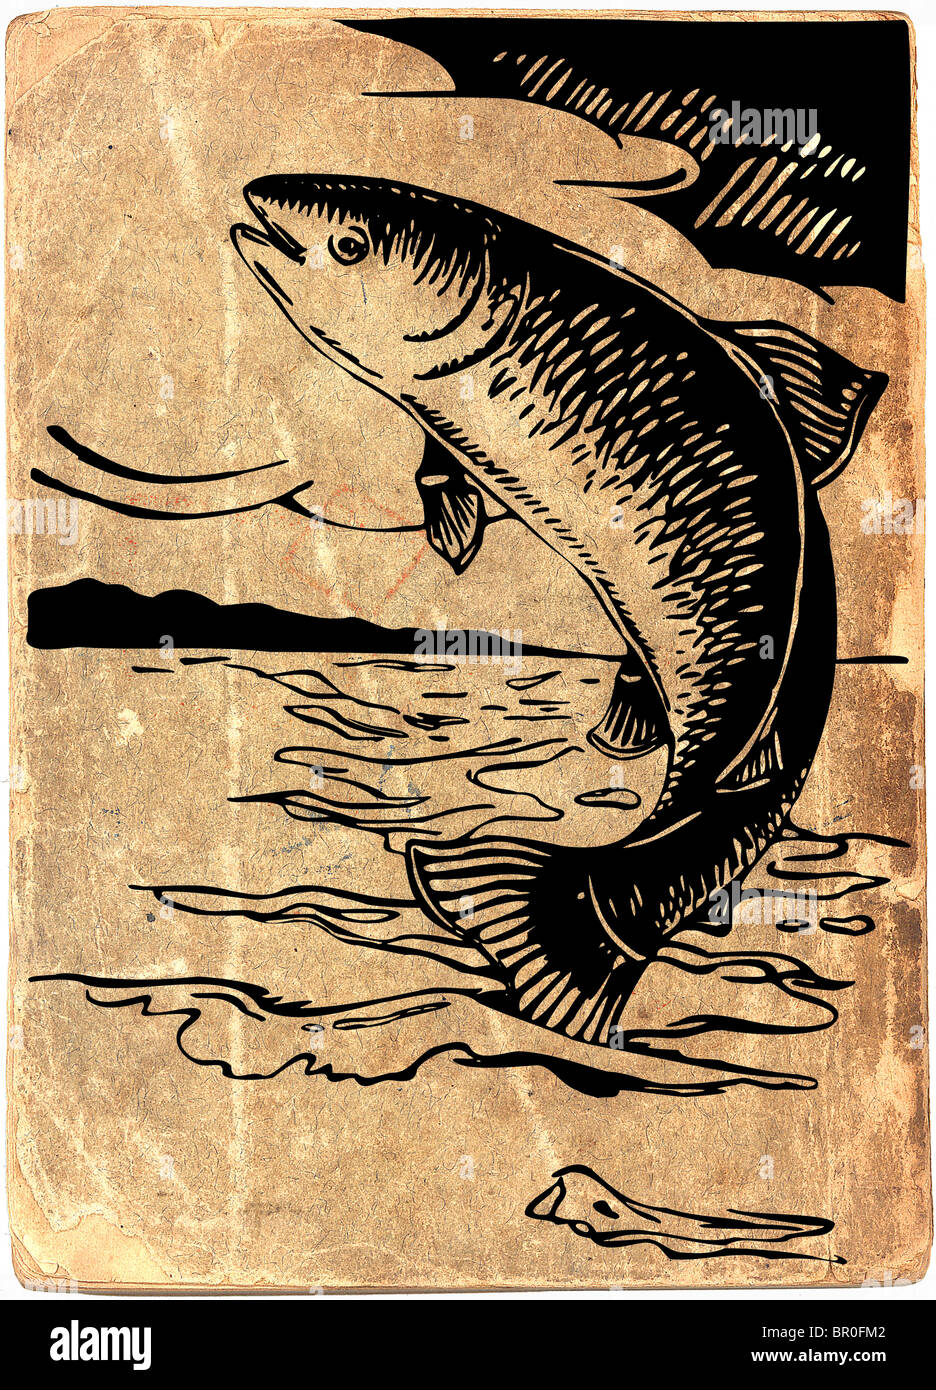 Fish jumping out of the water on vintage paper background - Stock Image